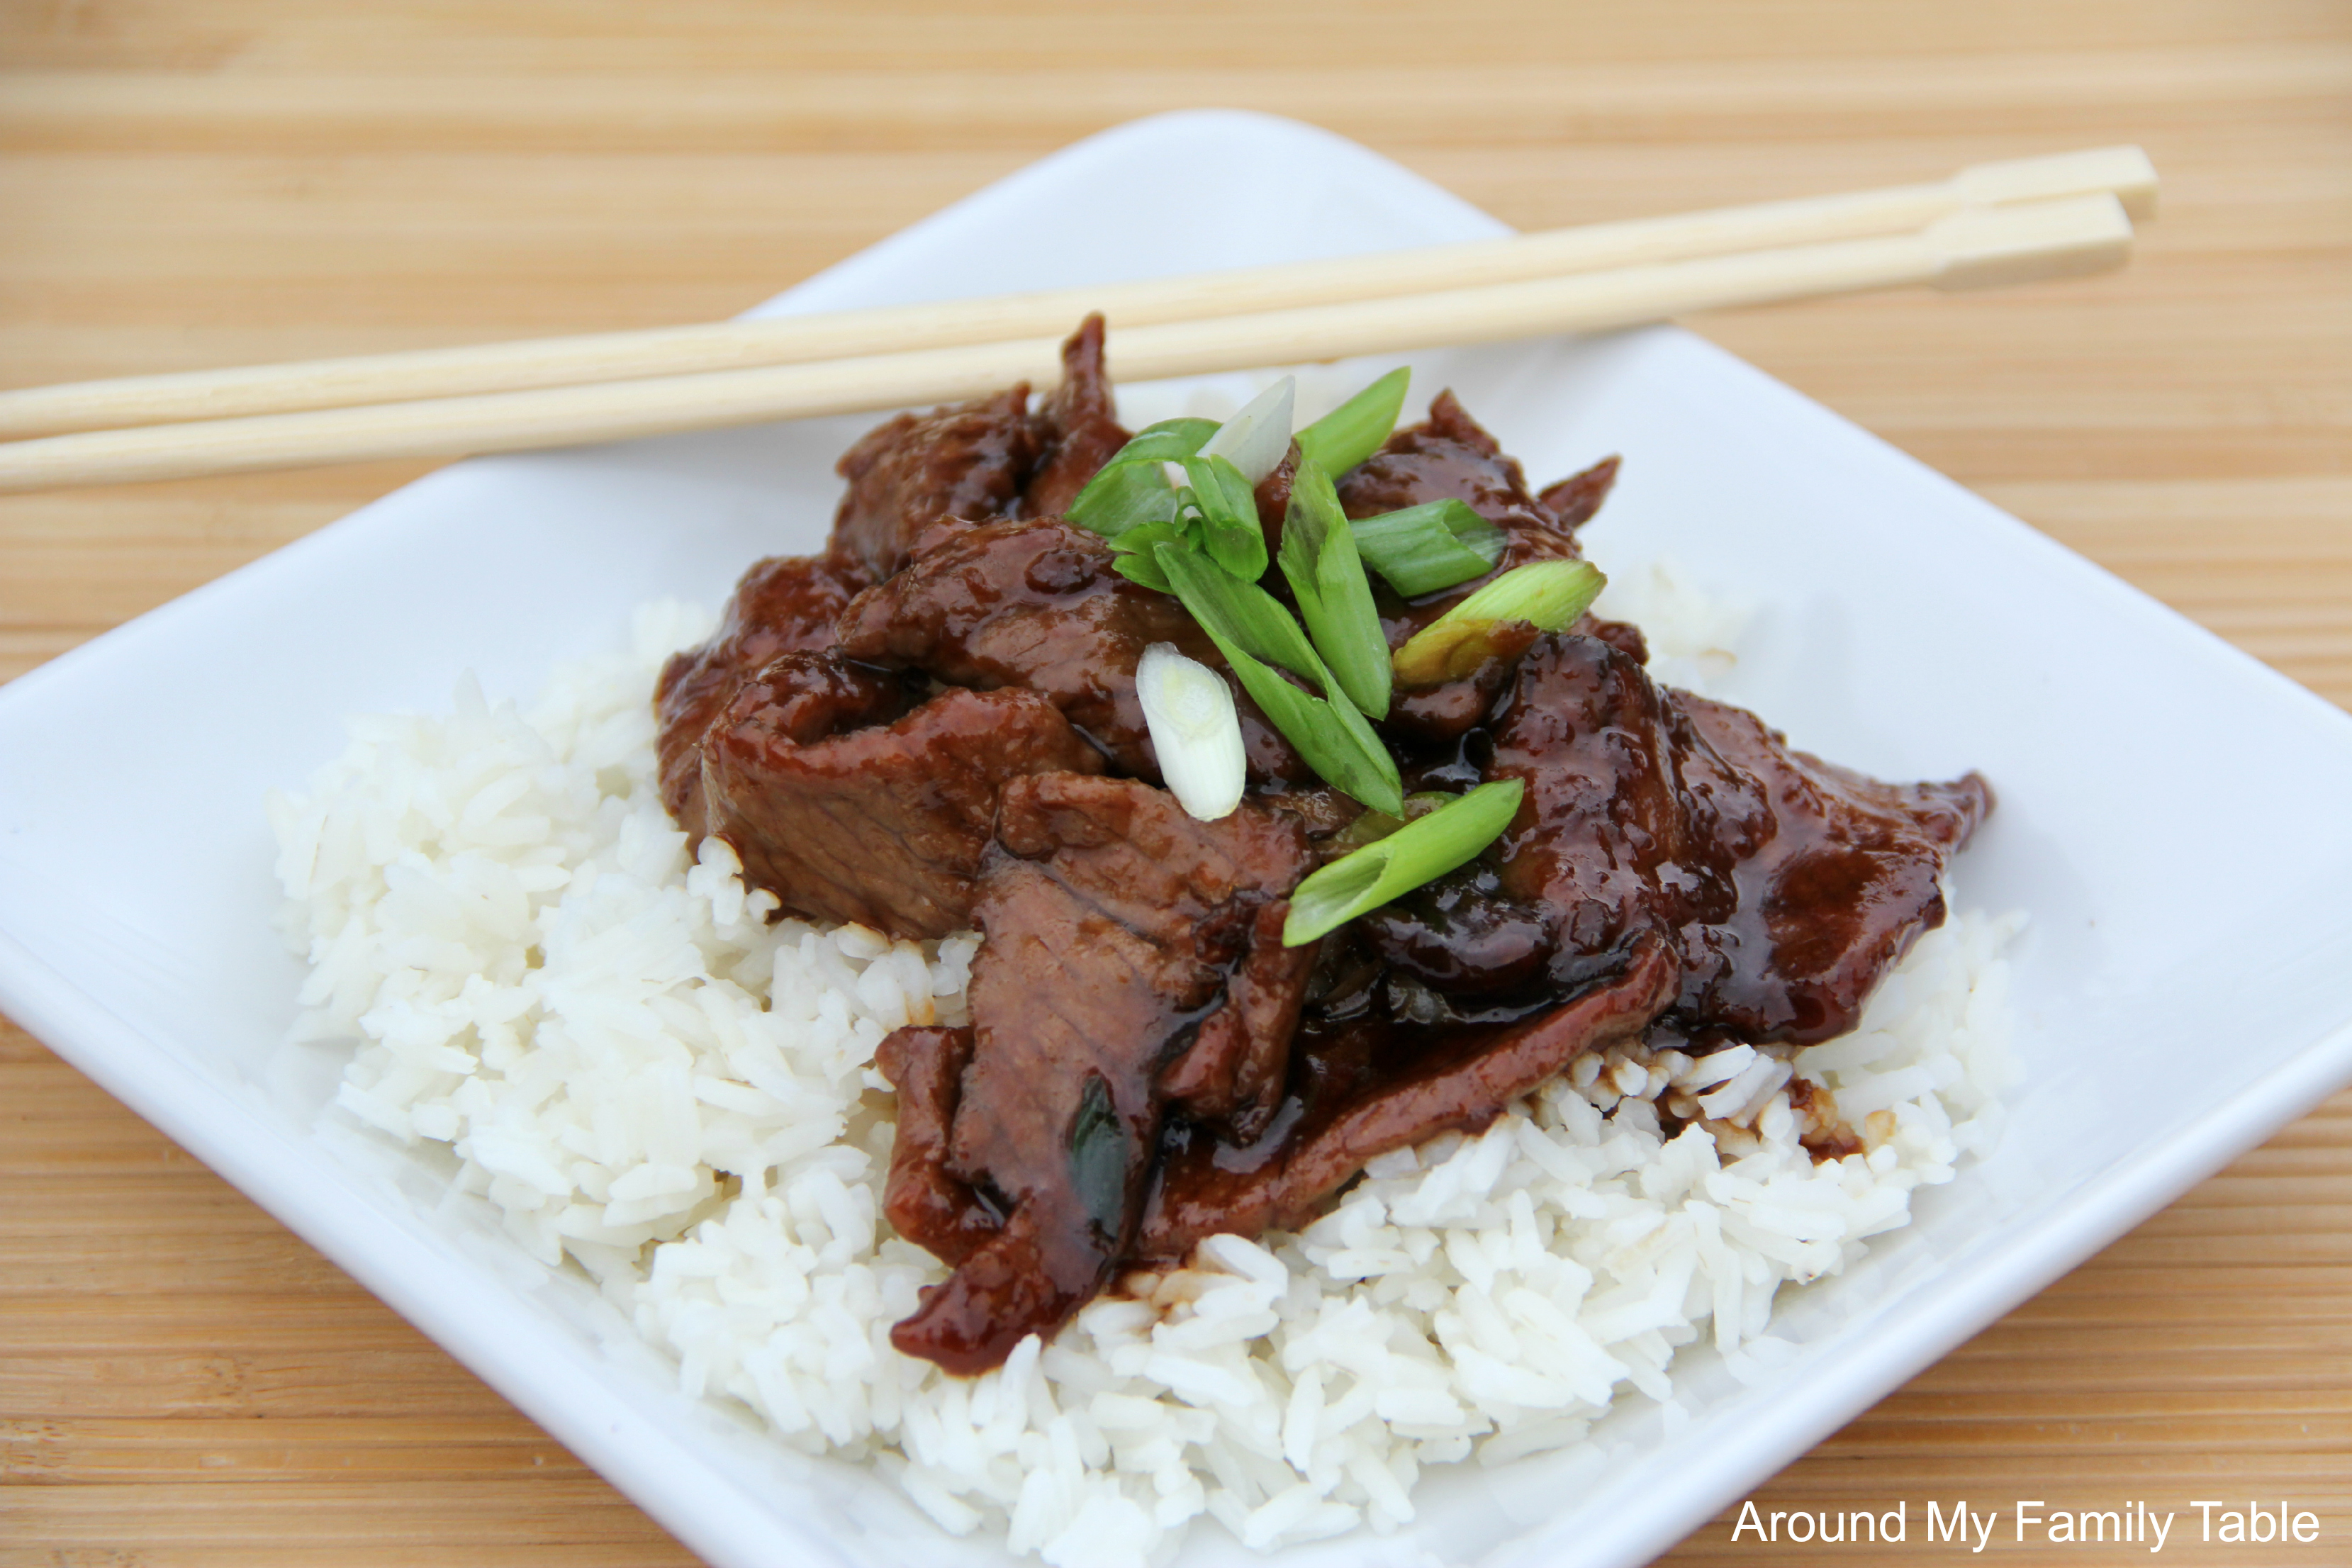 PF Chang's Mongolian Beef - Around My Family Table